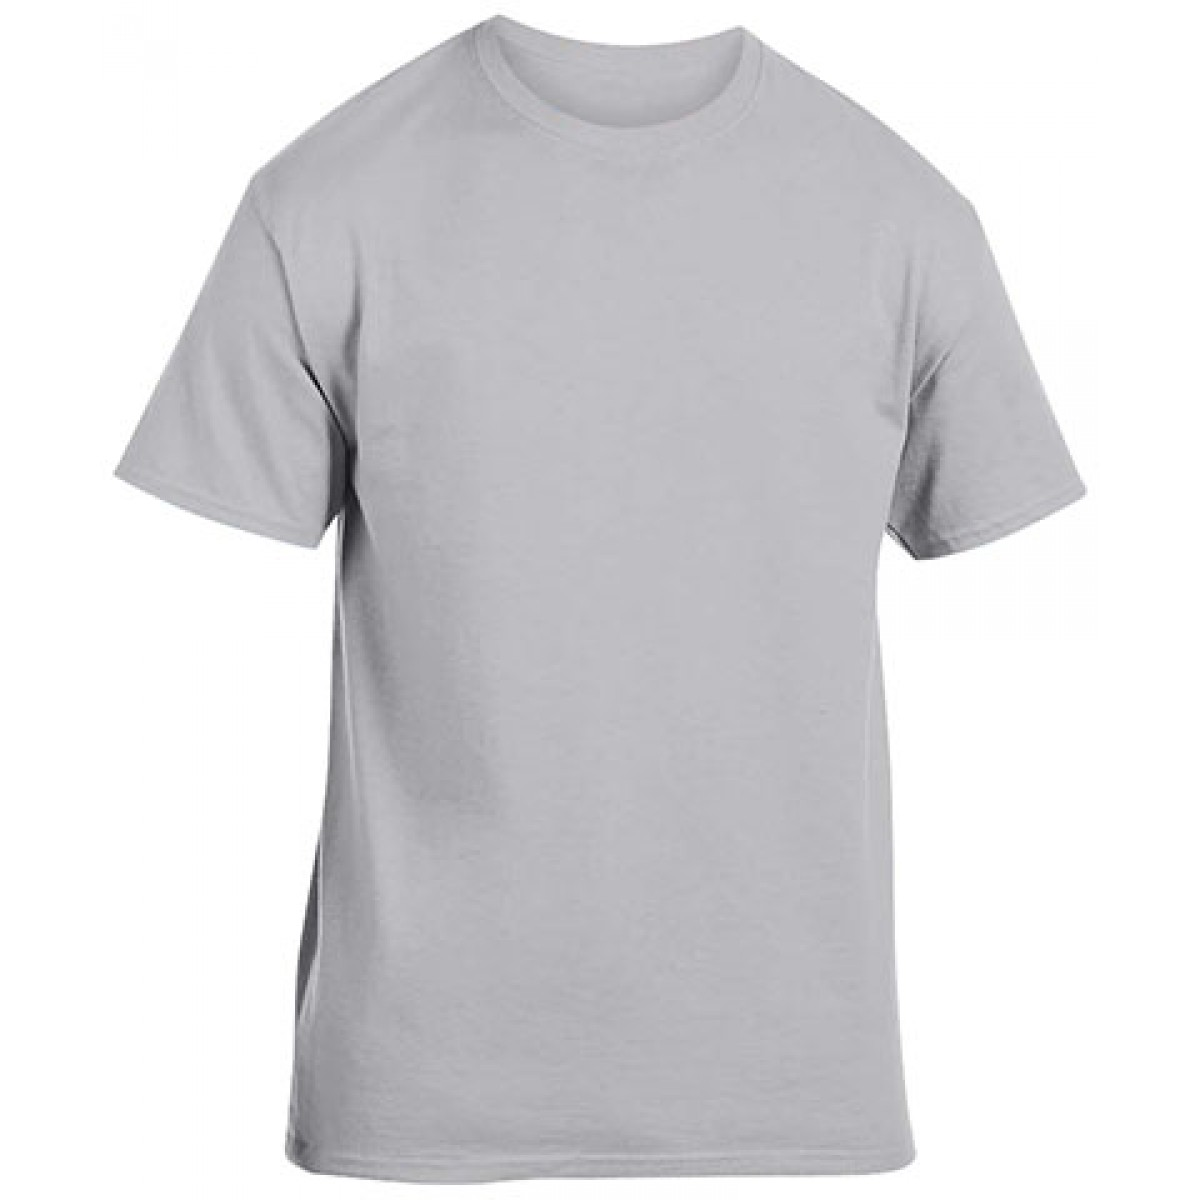 Cotton Short Sleeve T-Shirt-Gray-YM